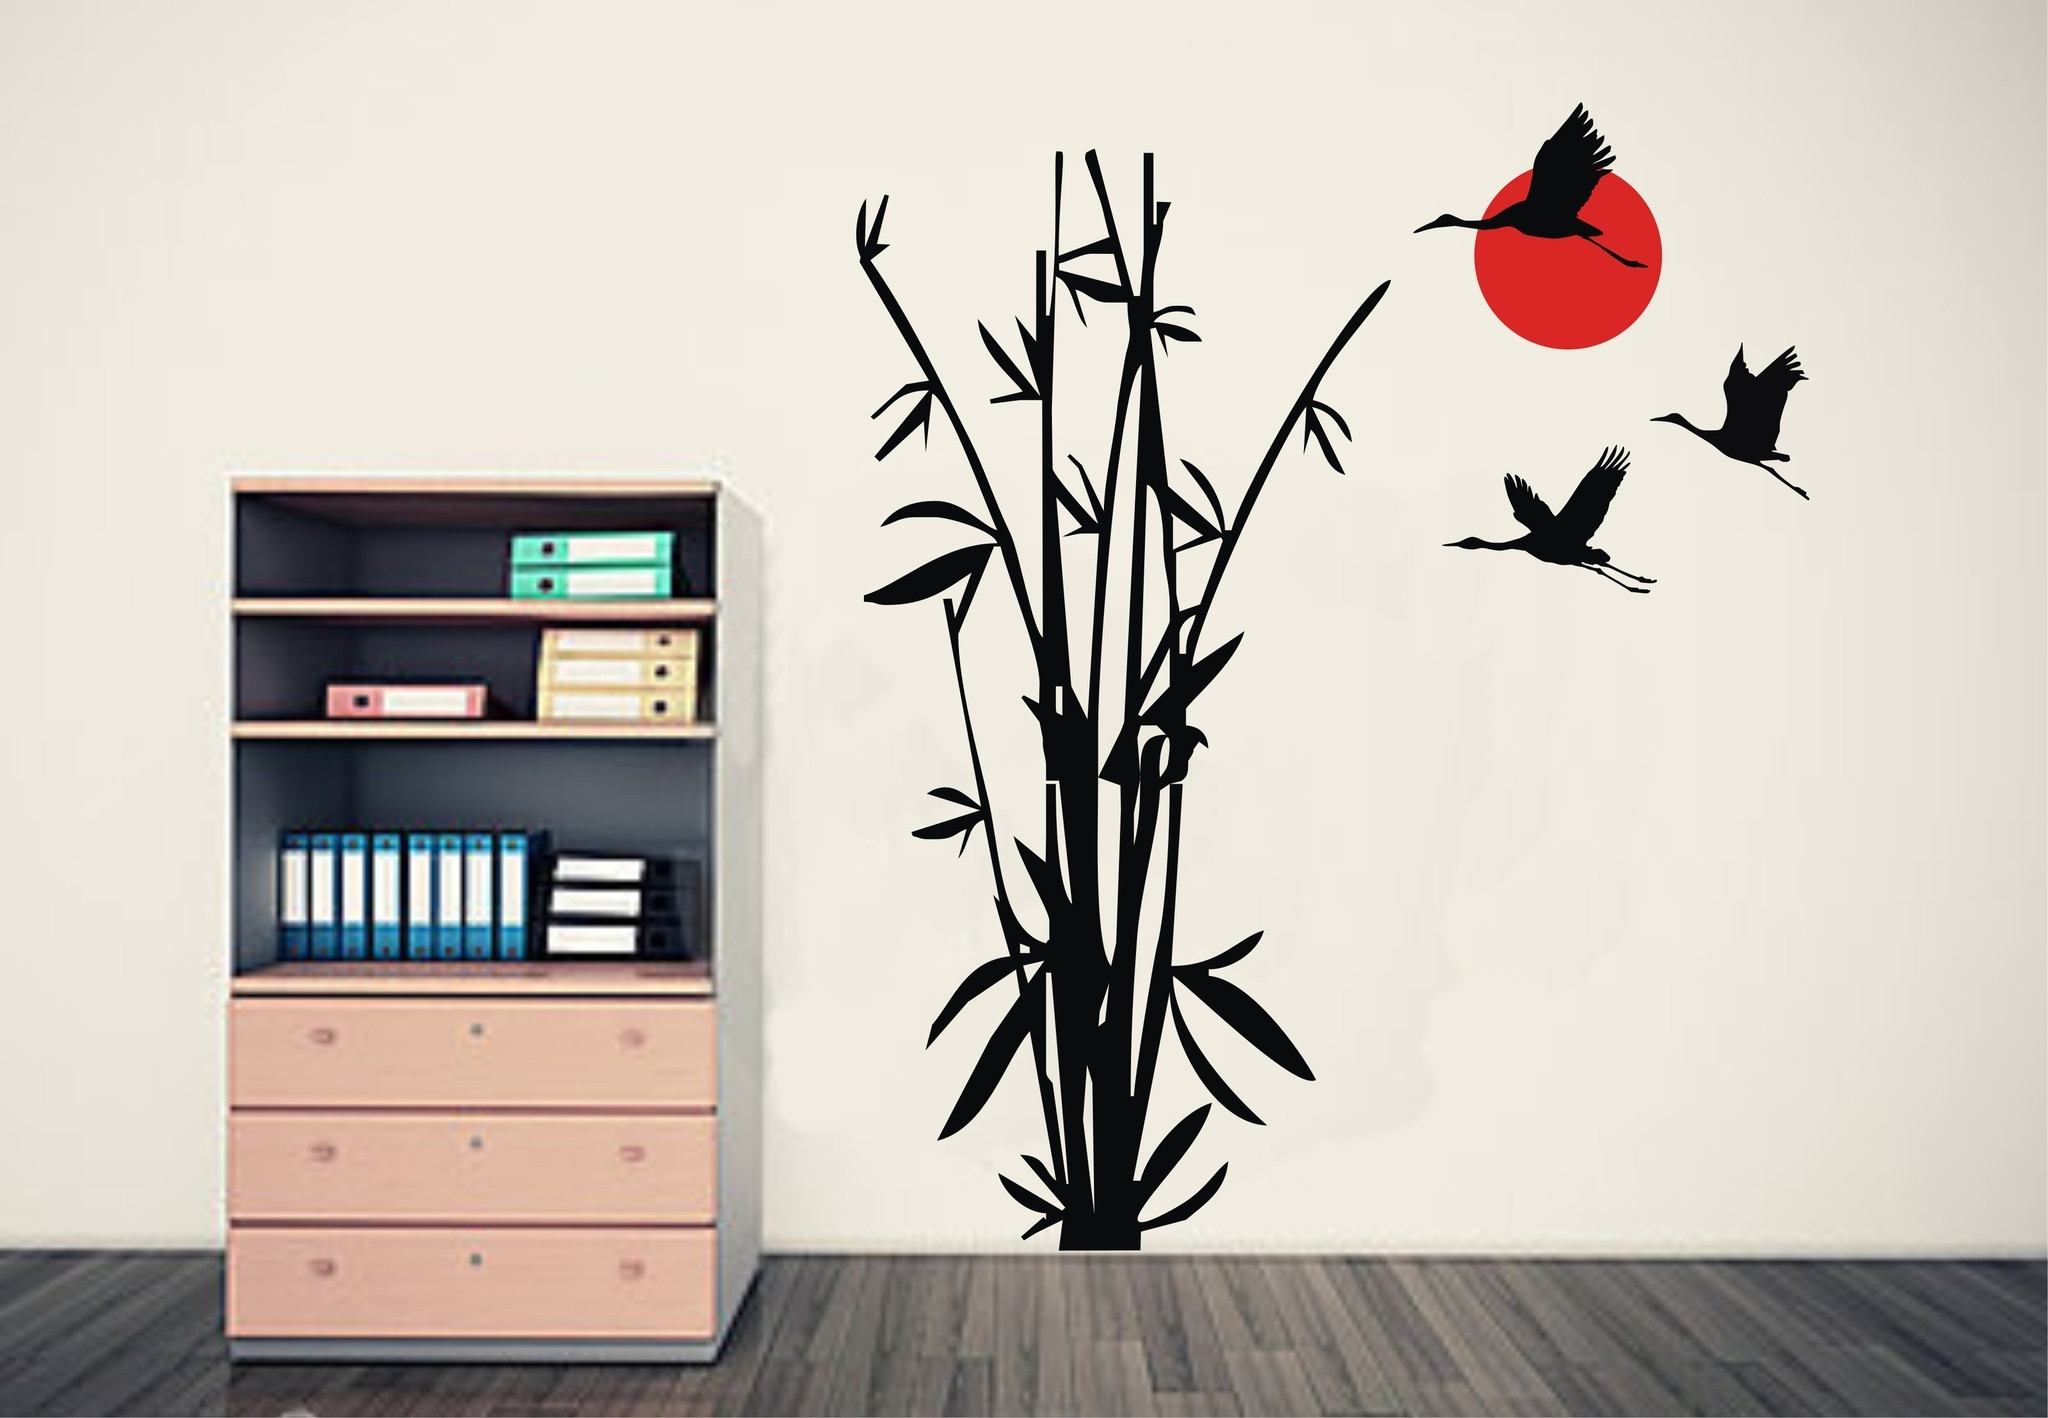 Popular Wall Art Designs Intended For Wall Art Designs: Bamboo Wall Art Bamboo And Flying Cranes Bamboo (View 4 of 15)